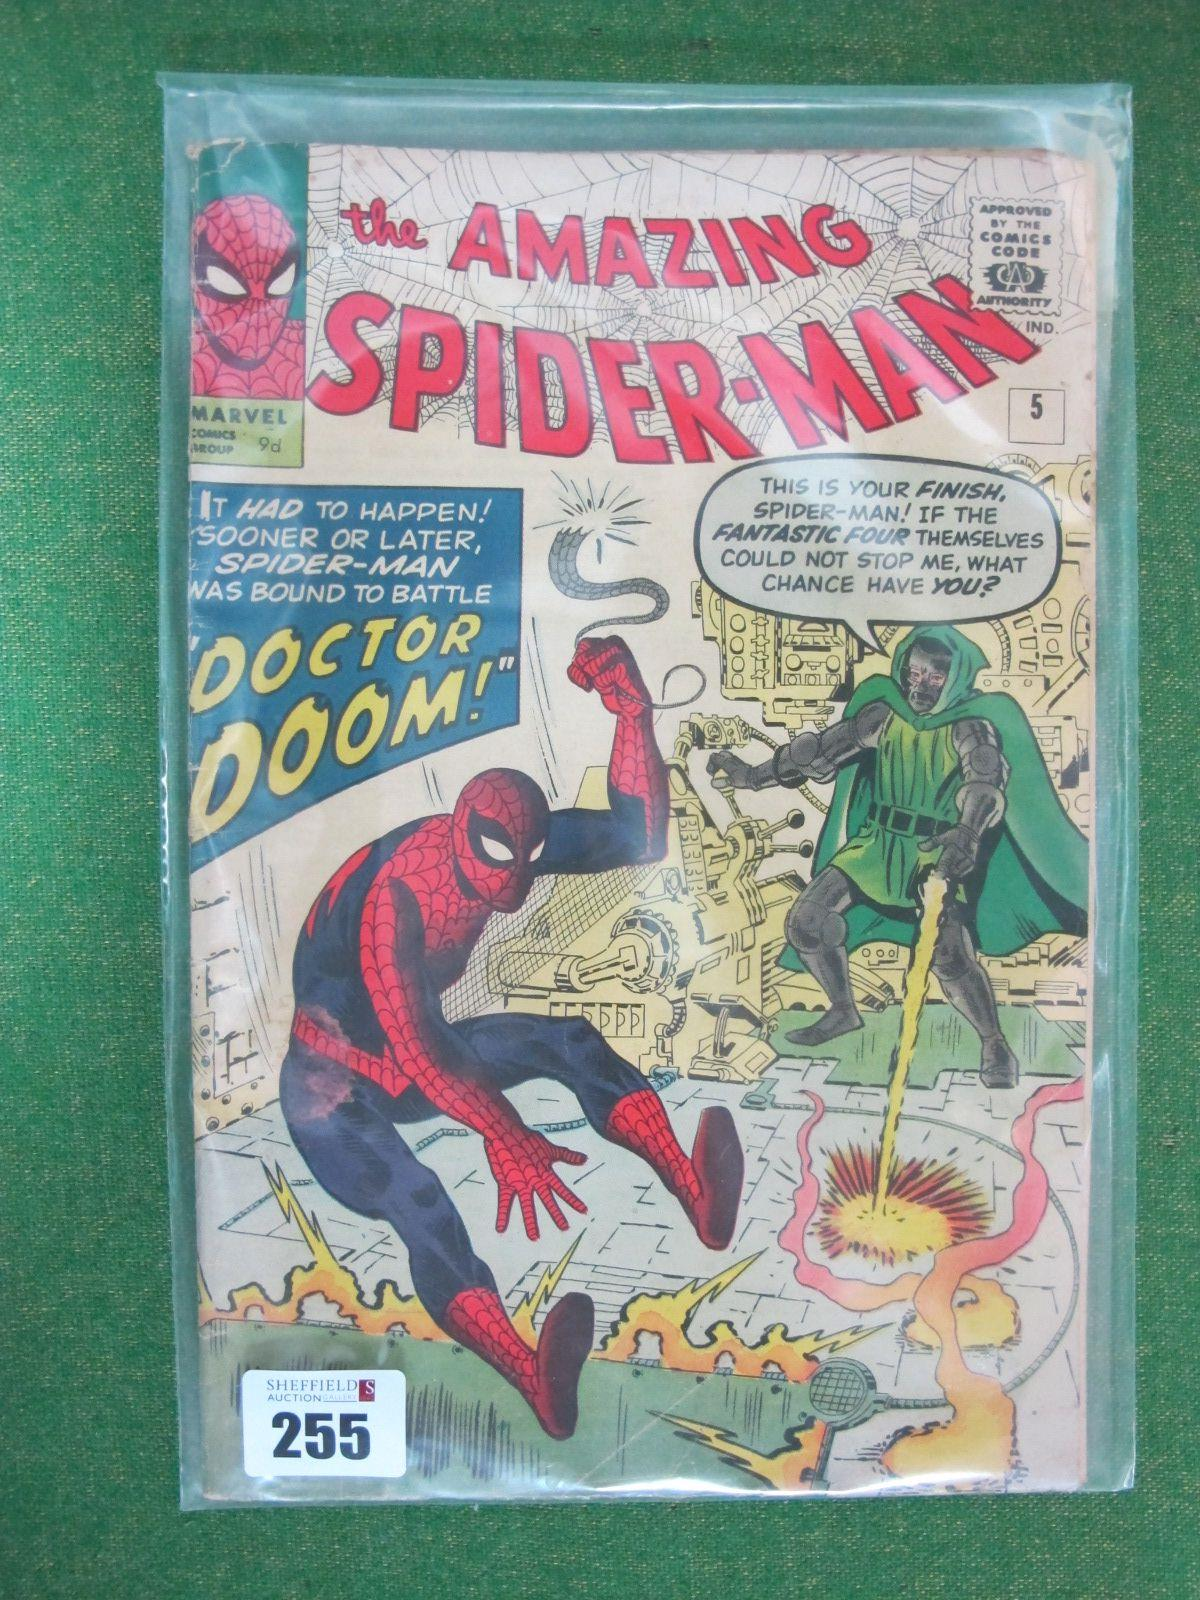 The Amazing Spiderman #5/No.5, 9d, in used well read condition.